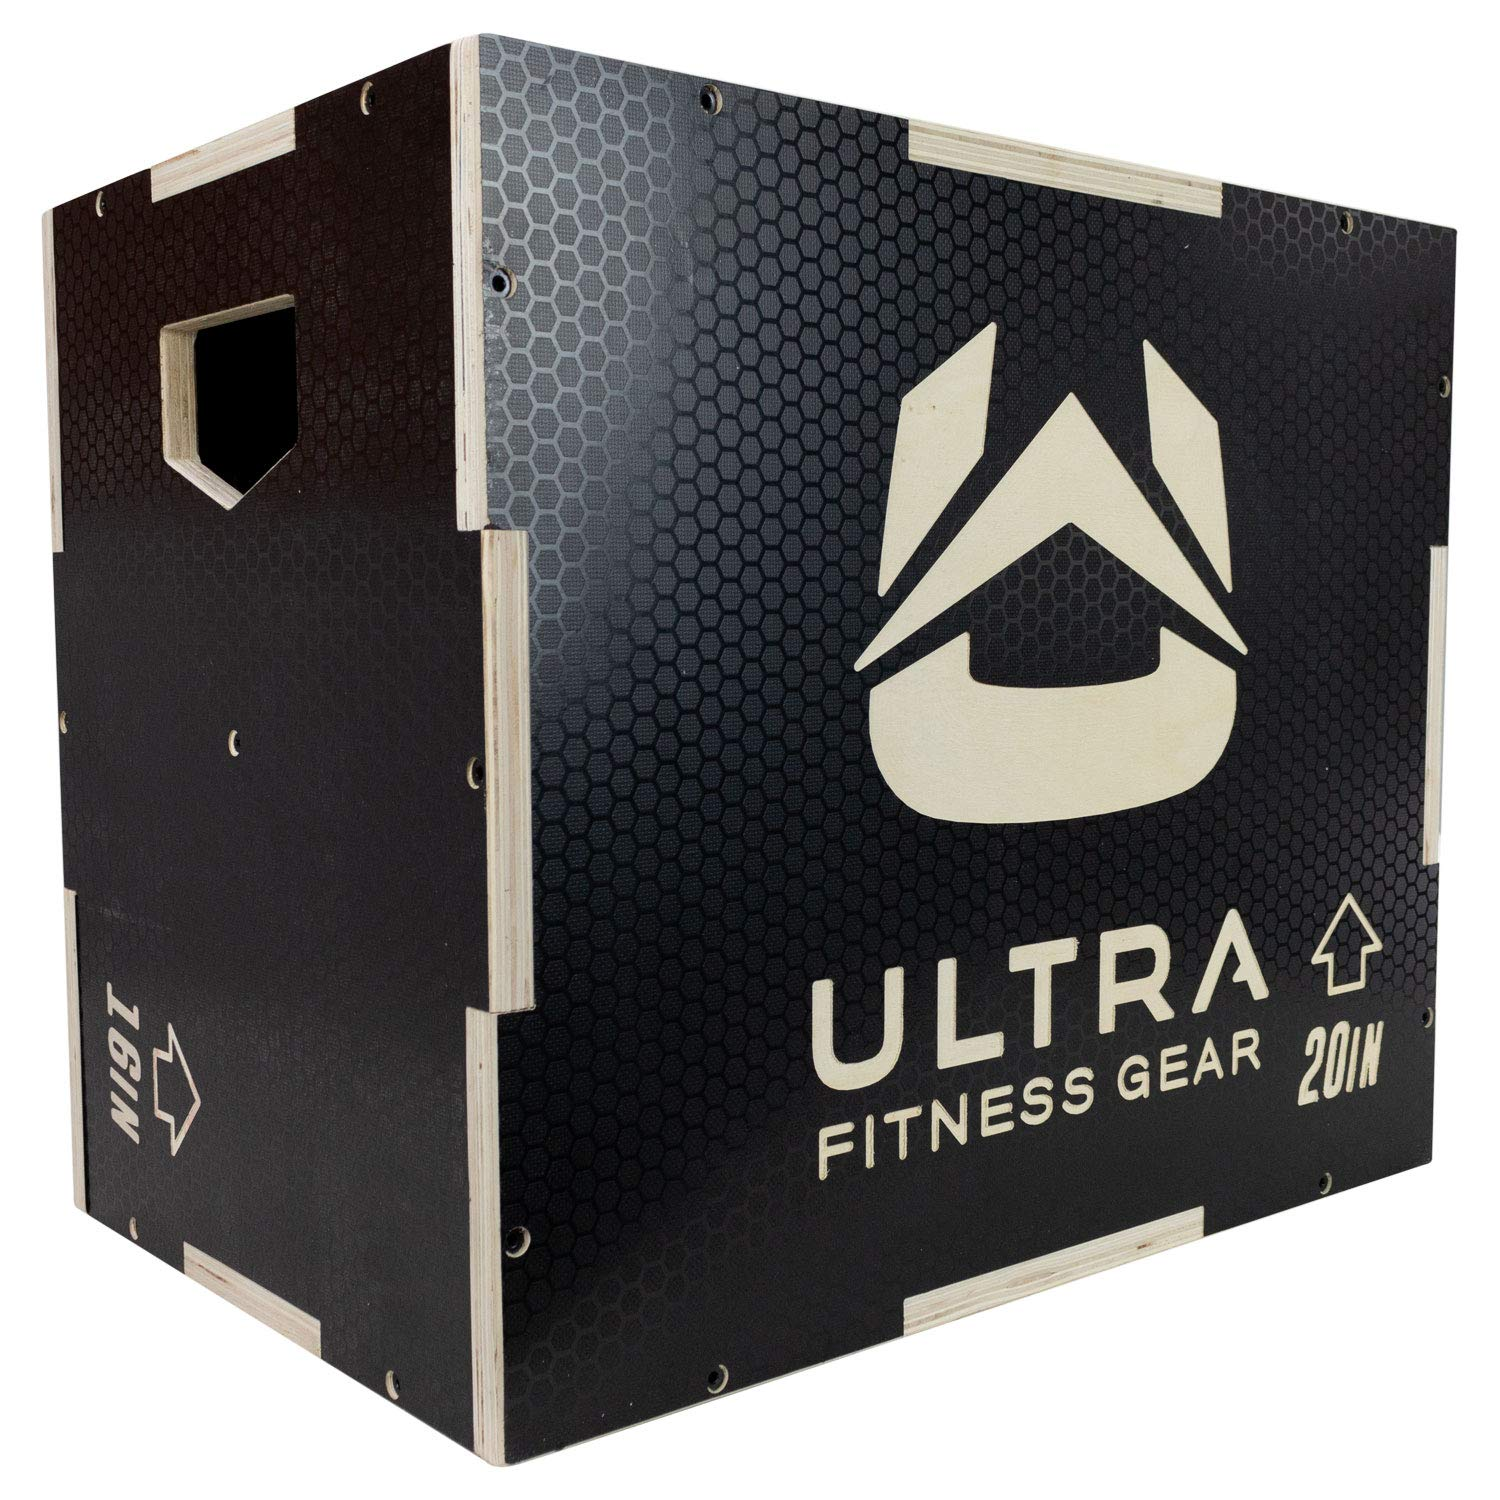 Ultra Fitness Gear 3 in 1 Anti-Slip Wood Plyo Box for Jump, Crossfit, MMA Training. Plyometrics. Sizes: 30/24/20, 24/20/16, 20/18/16, or 16/14/12